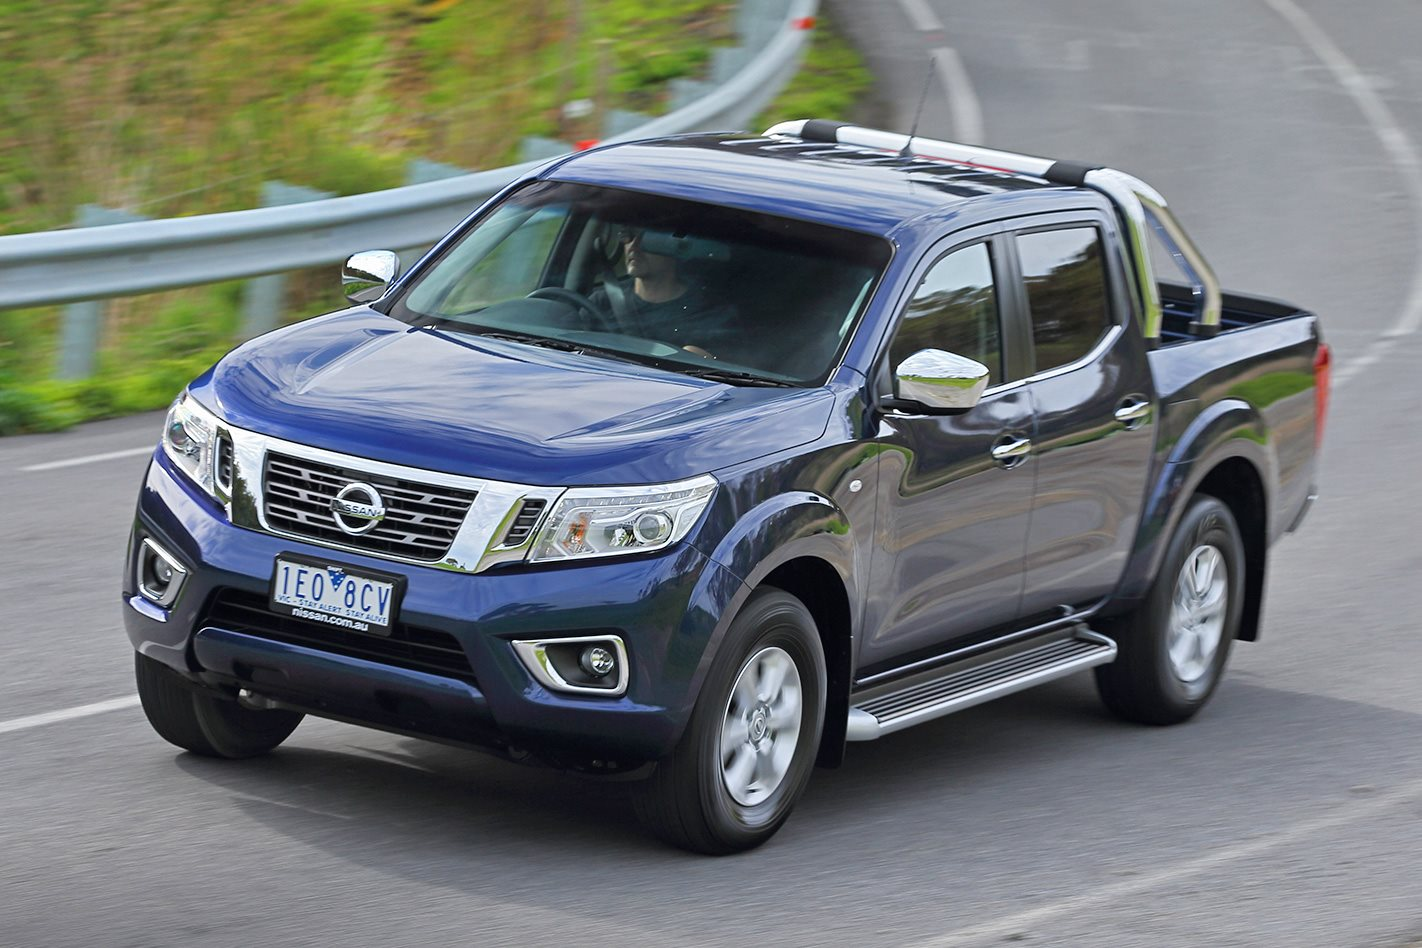 2015 nissan navara st 4x4 first drive review. Black Bedroom Furniture Sets. Home Design Ideas